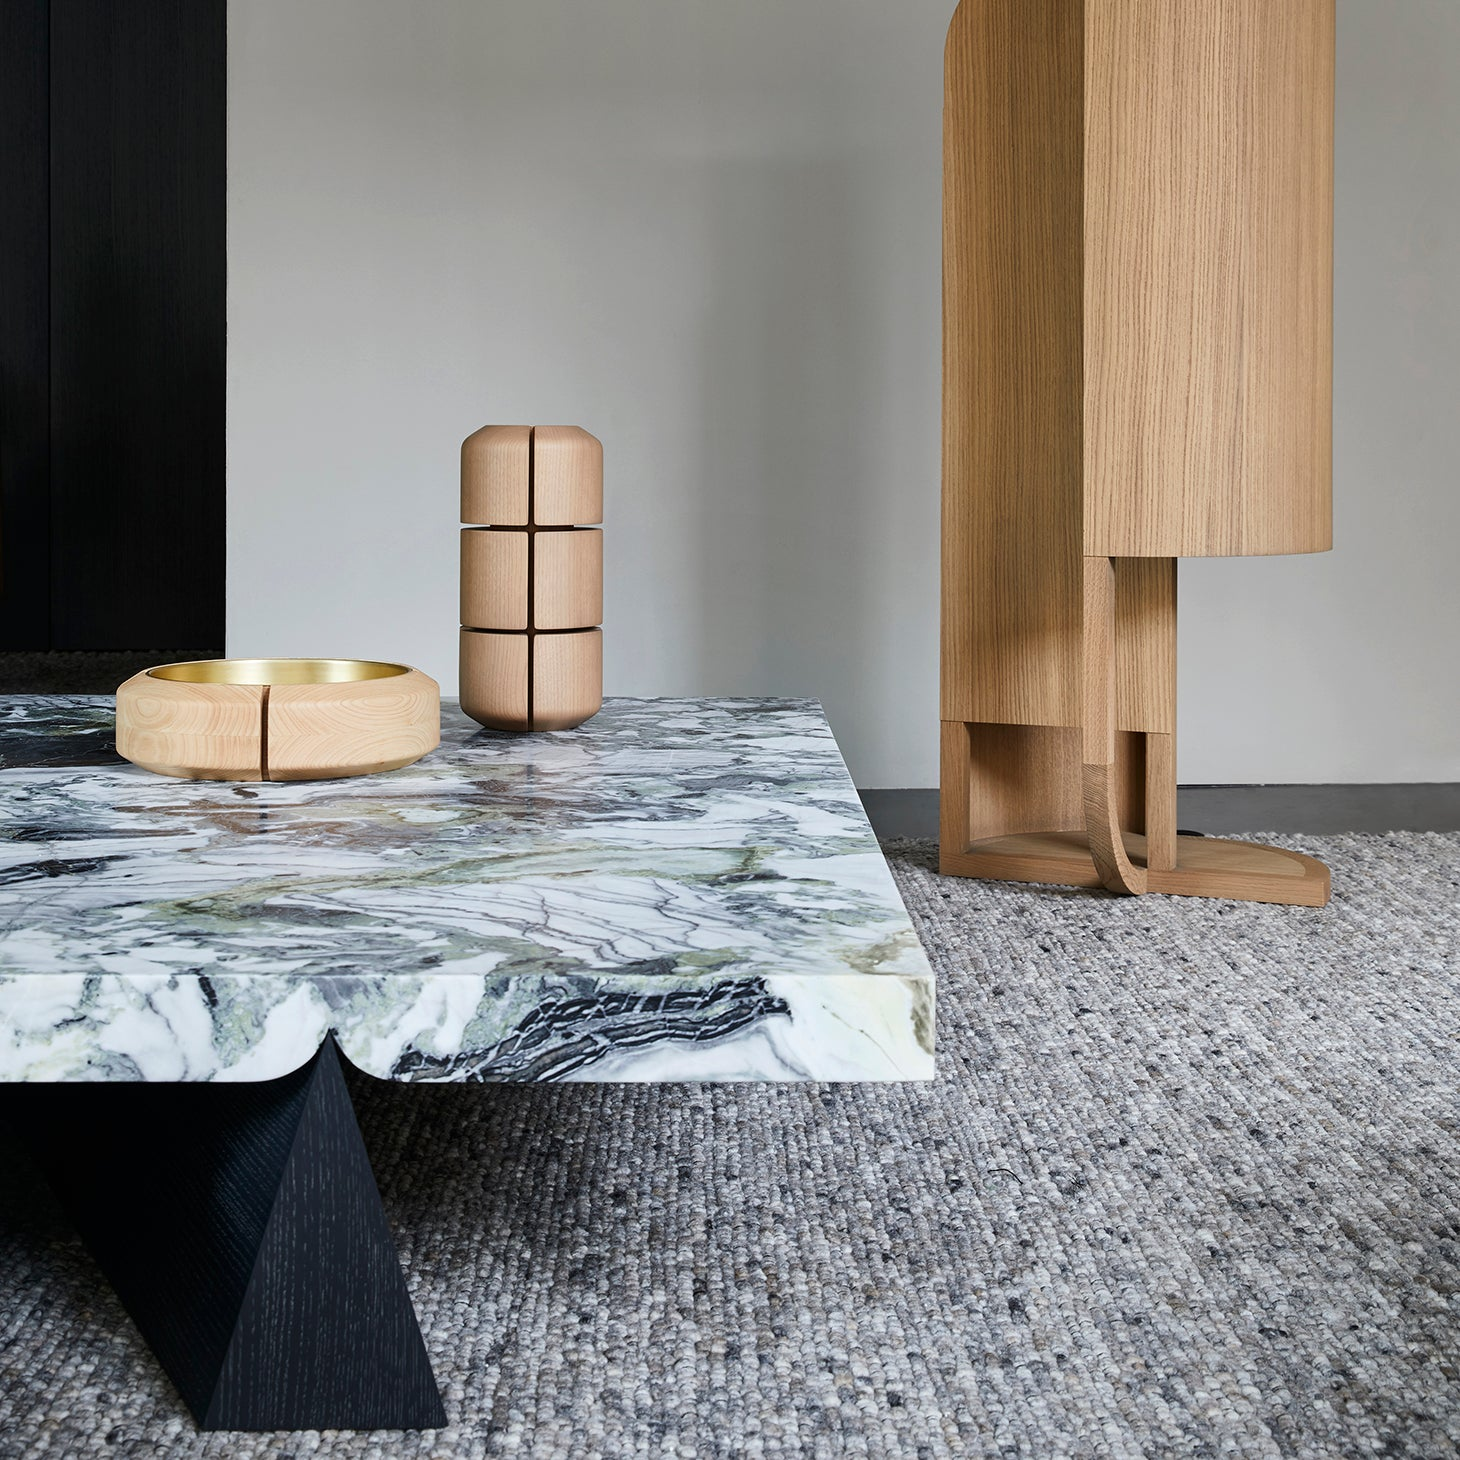 GEO Low Table Tables Christophe Delcourt Designer Furniture Sku: 008-230-10489